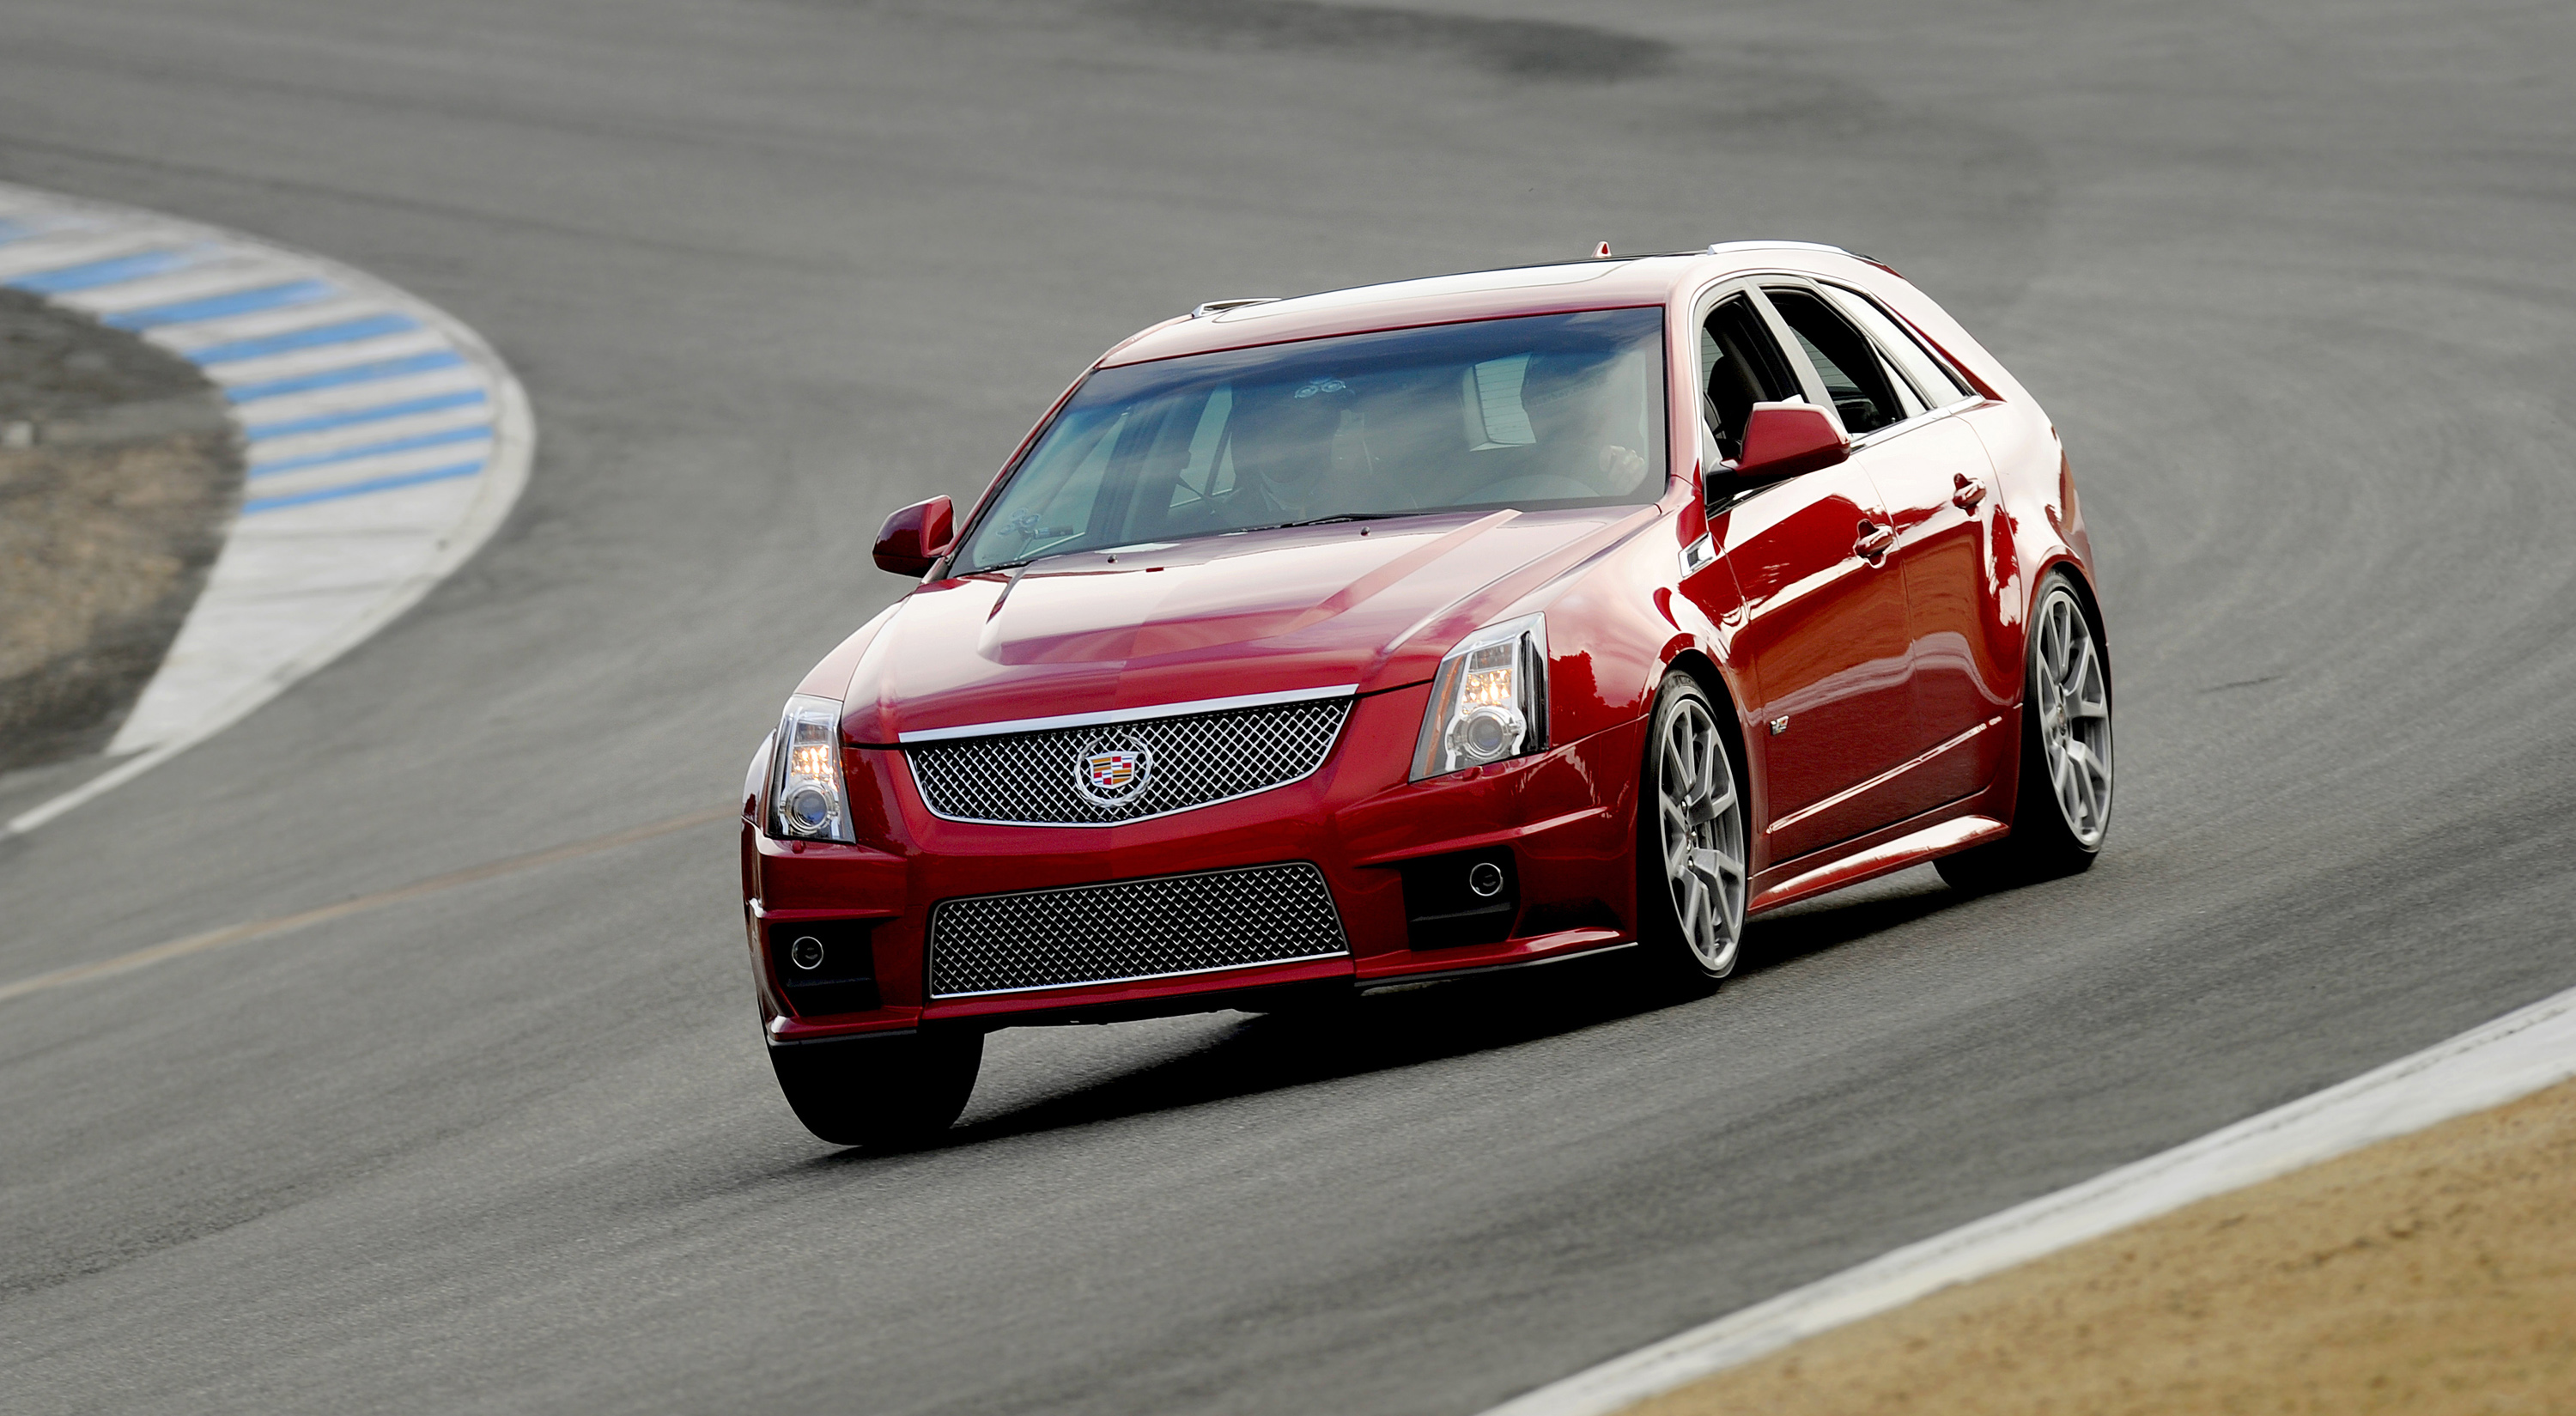 2014 Cadillac CTS-V Wagon on the track